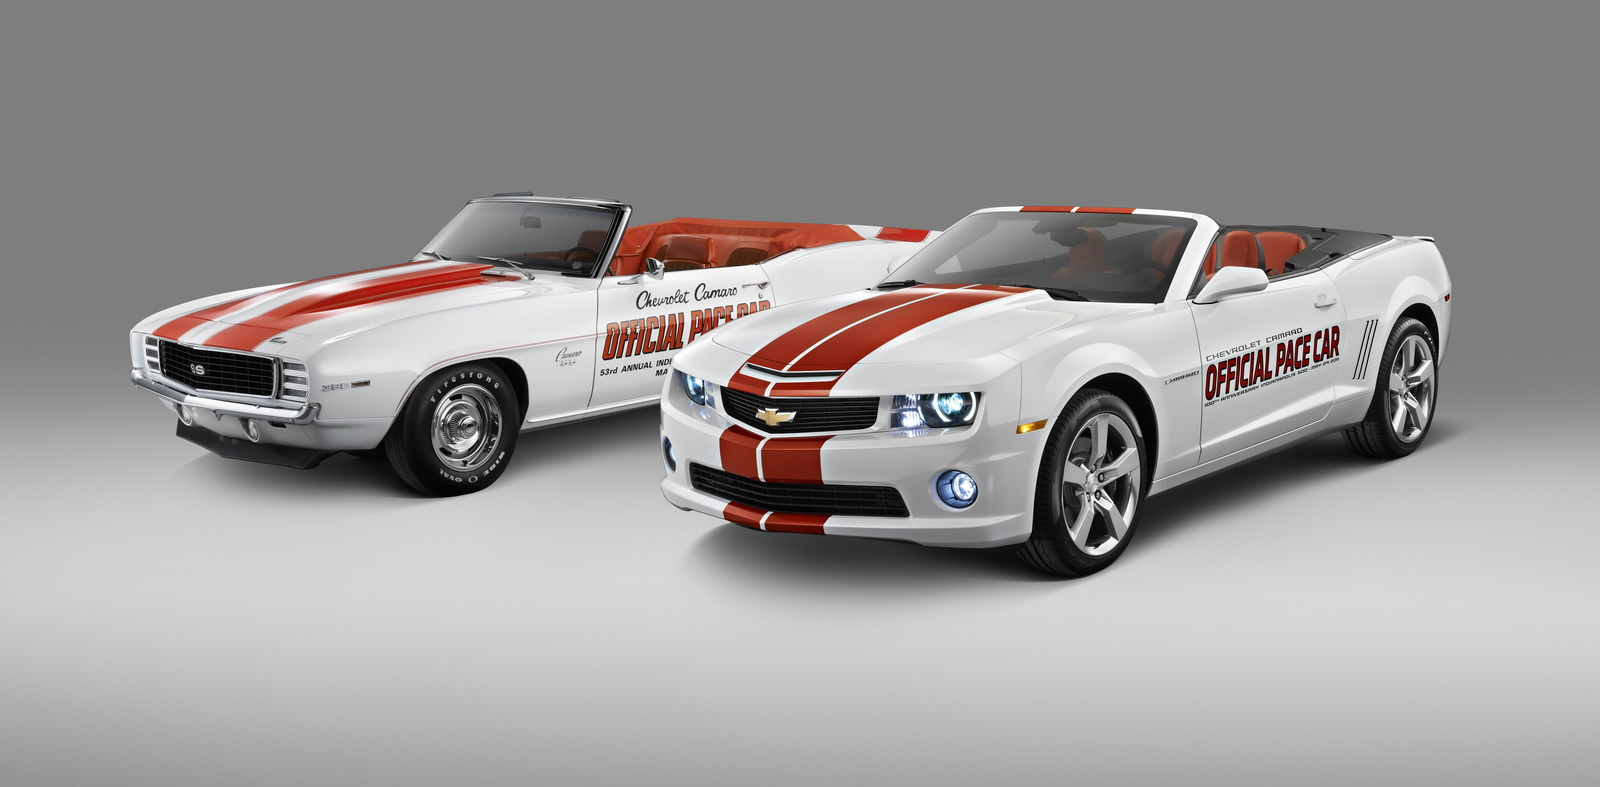 Chevrolet and the Indianapolis Motor Speedway announced that a special Chevrolet Camaro Convertible has been selected as the Official Pace Car of the 2011 Indianapolis 500.